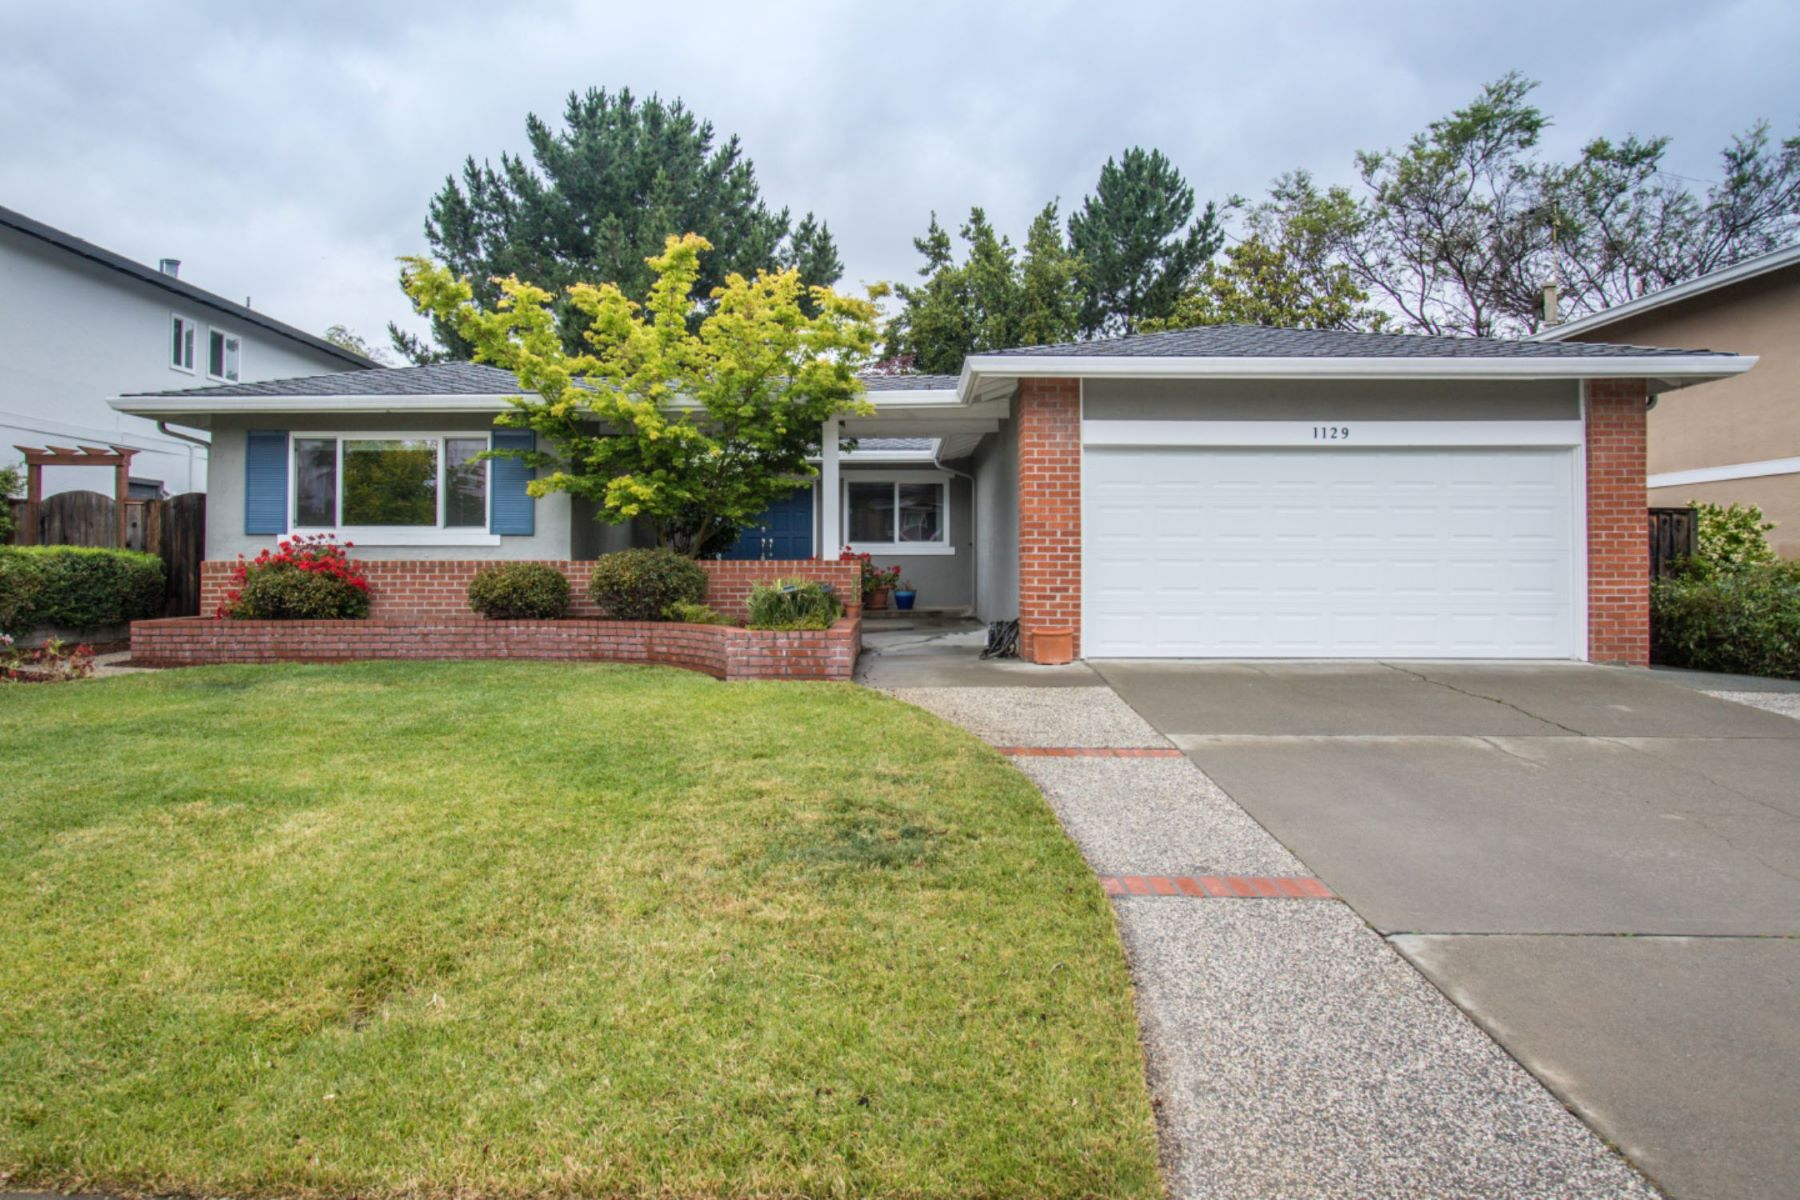 Single Family Home for Active at Bright, Serene and Spacious 1129 Clydebank Court Sunnyvale, California 94087 United States